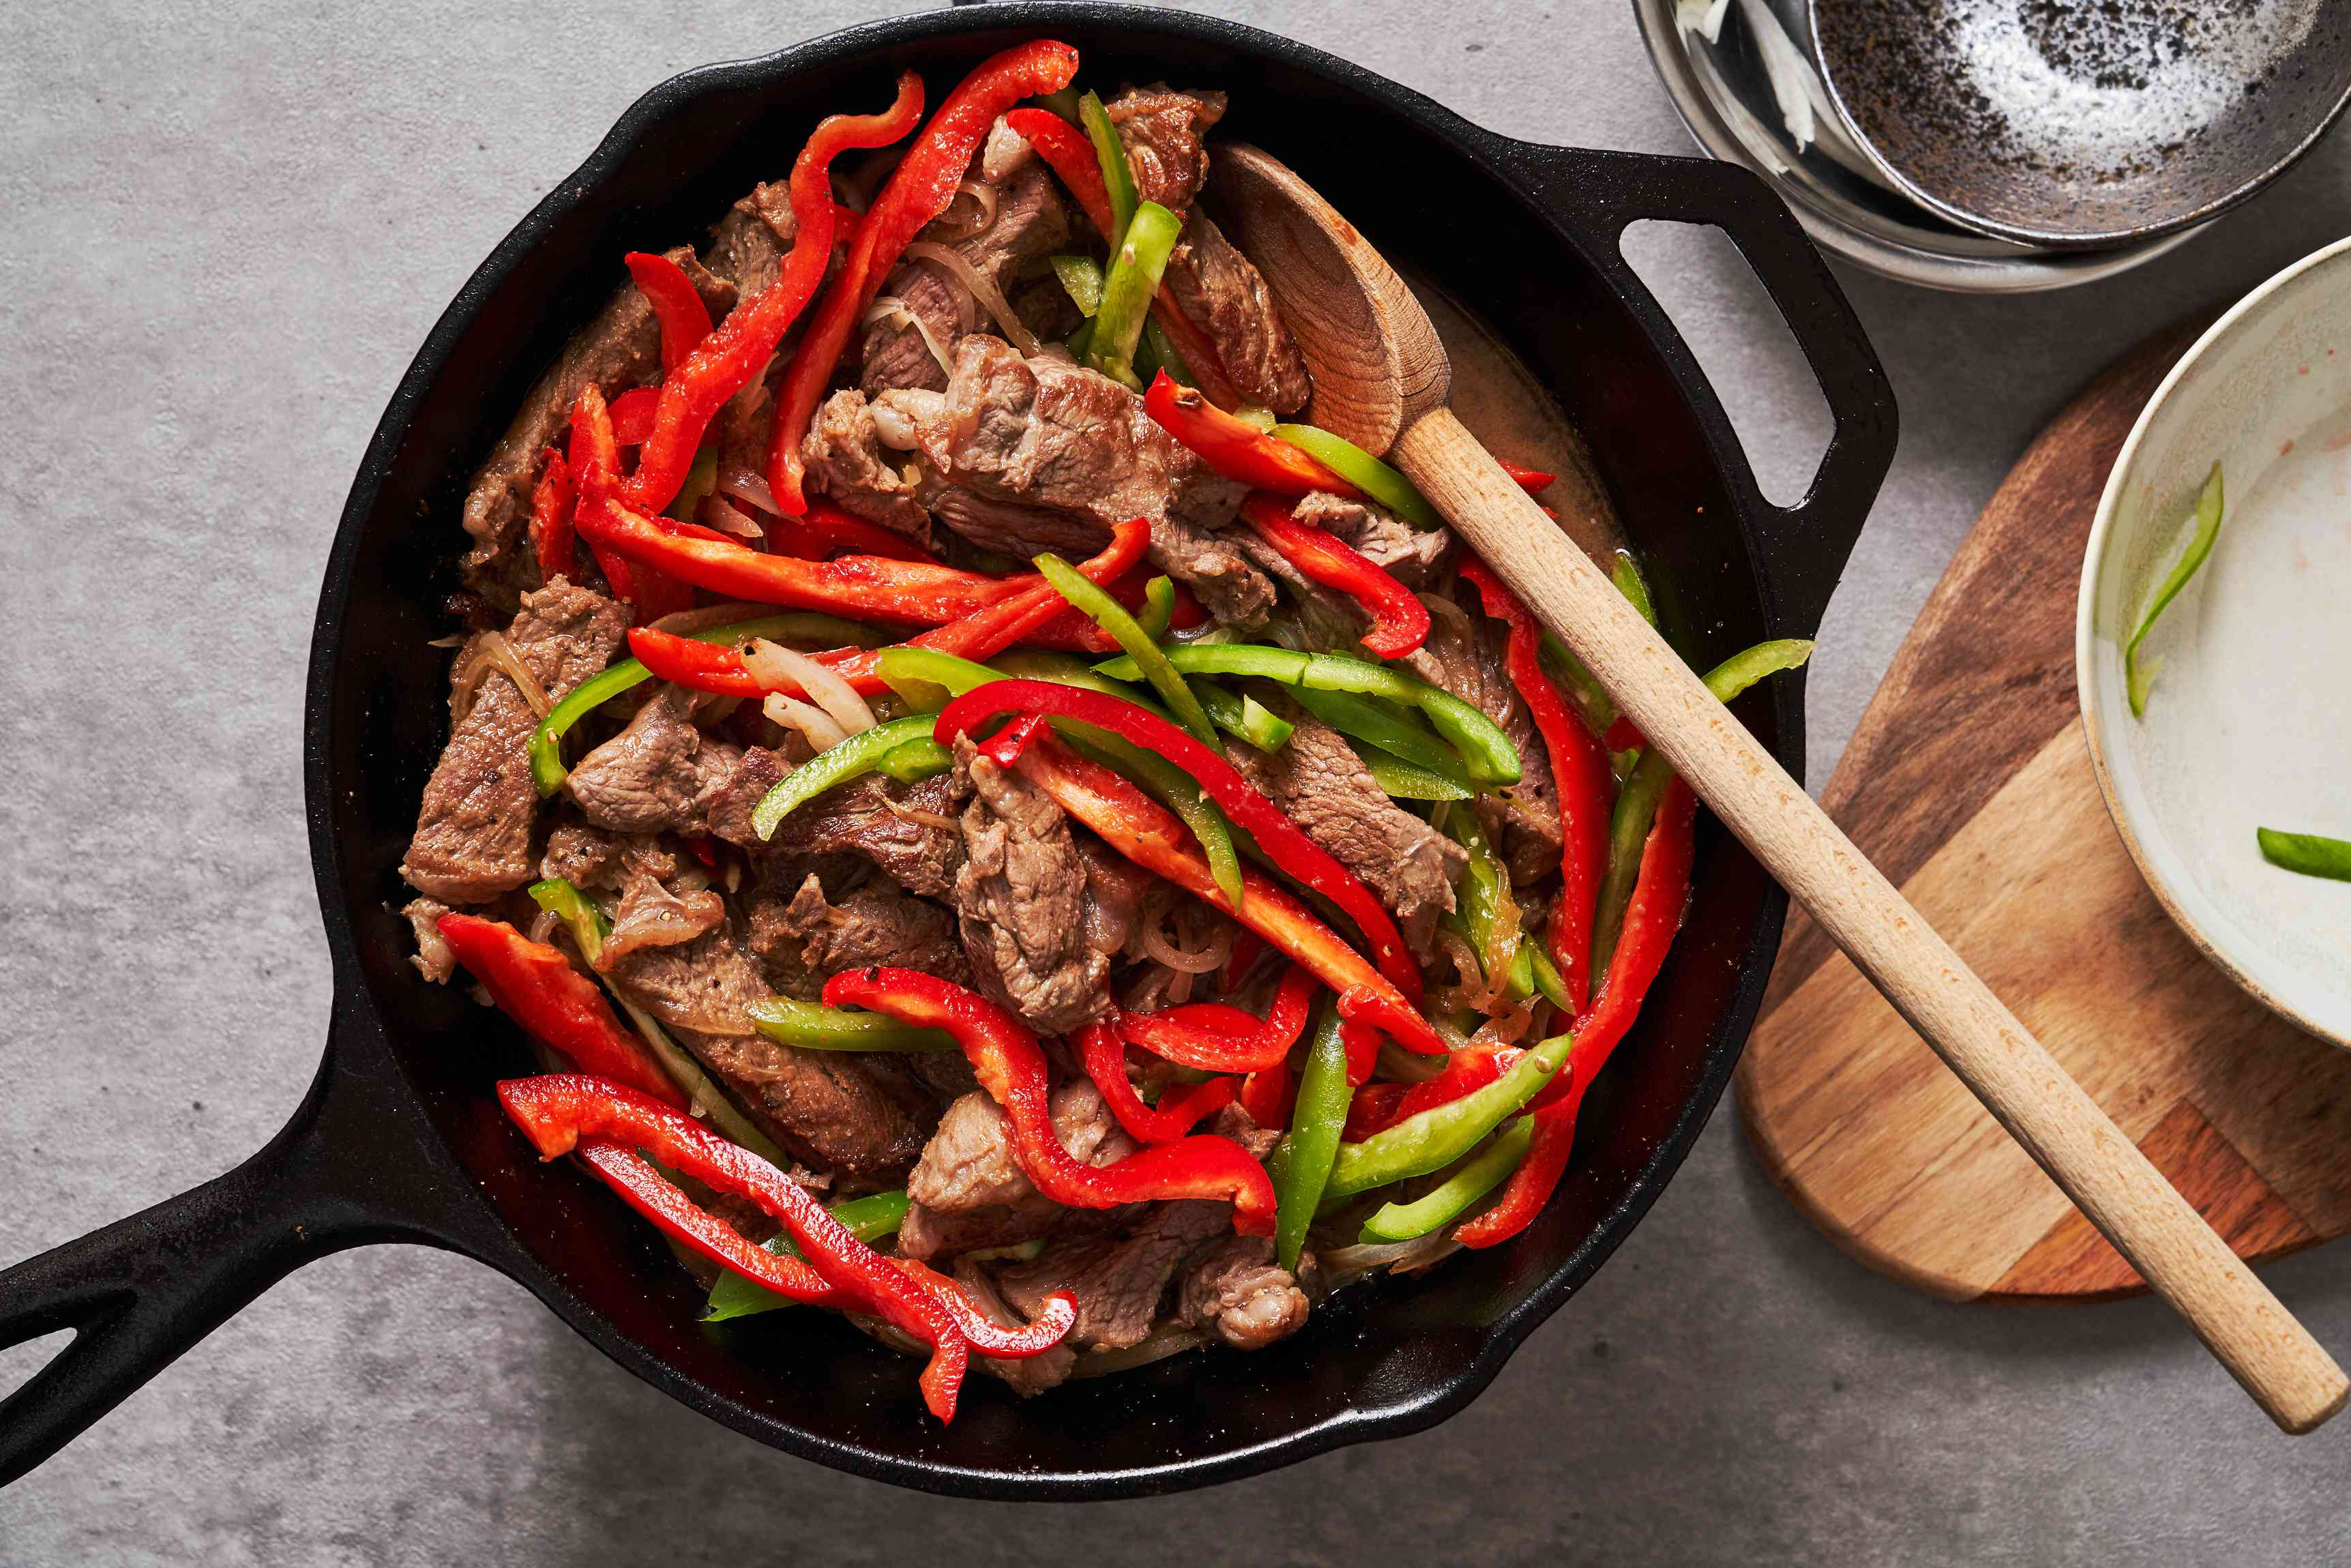 Peppers and steak